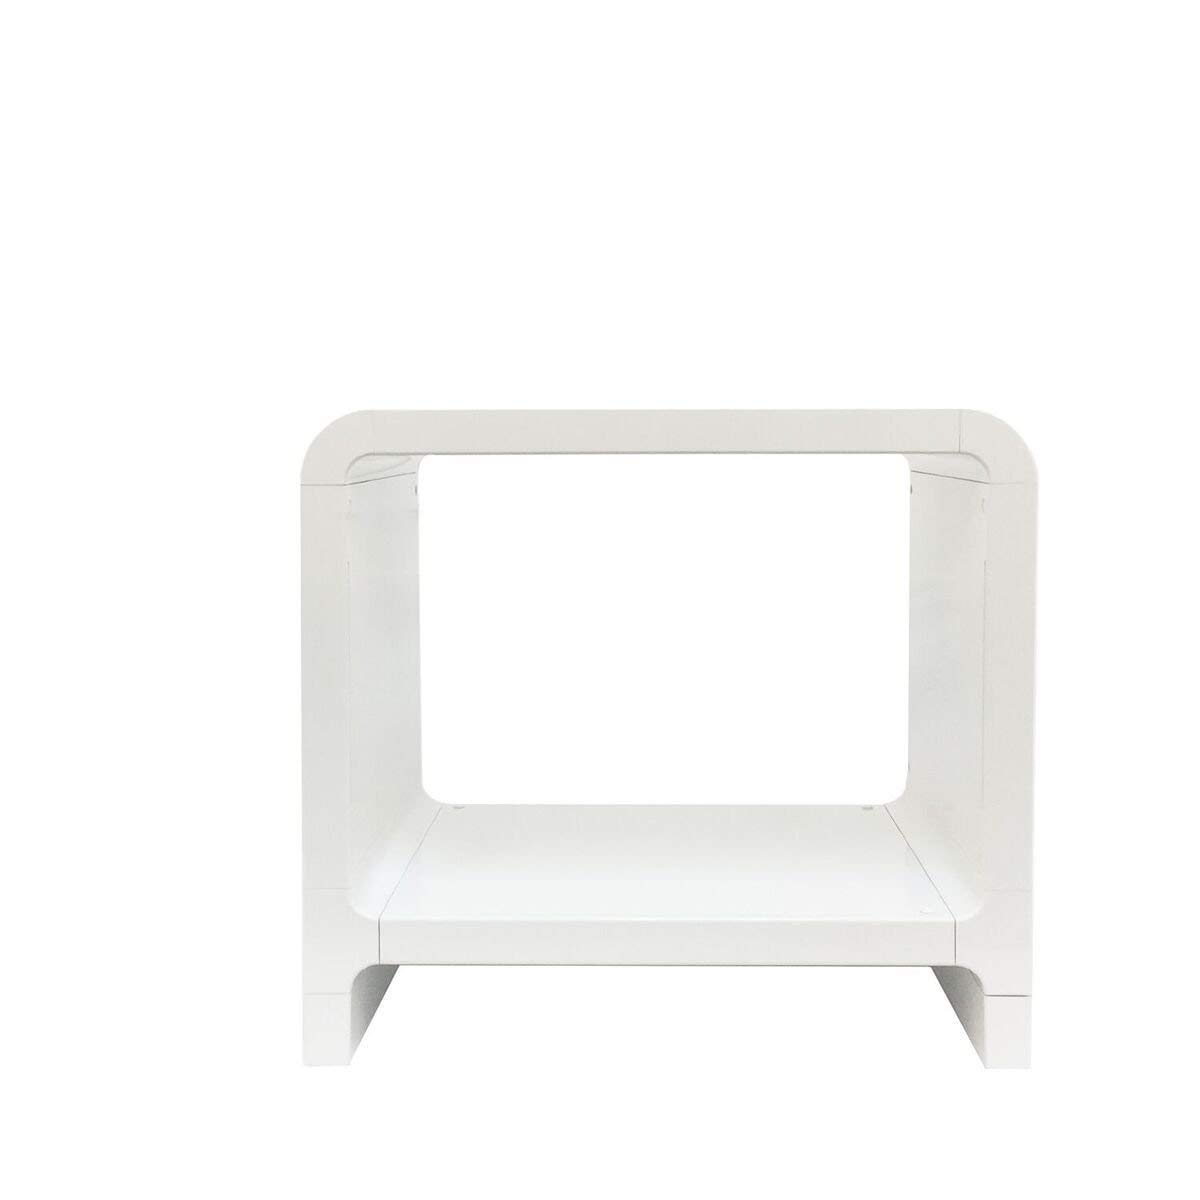 Indoor Multi-Function Accent Table Study Computer Home Office Desk Bedroom Living Room Modern Style End Table Sofa Side Table Coffee Table White side table